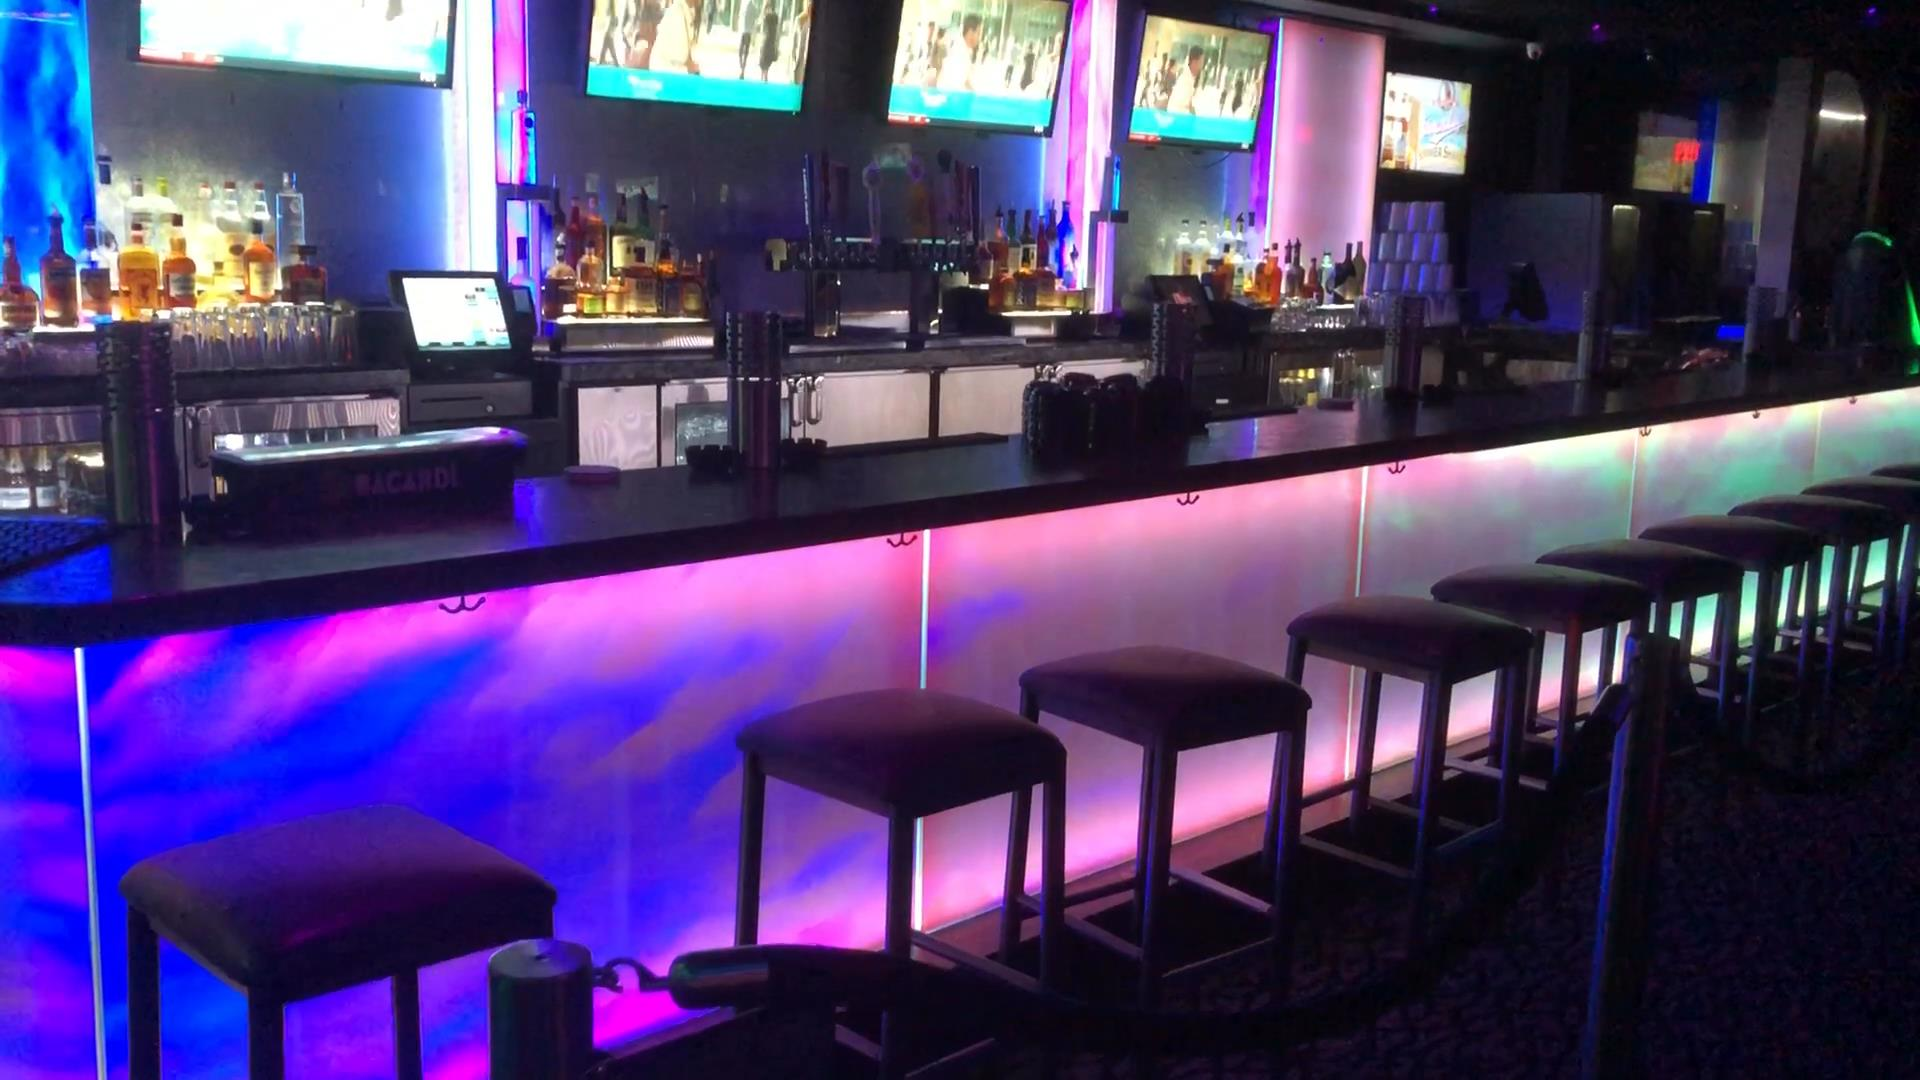 Photo of LED backlit bar with architectural glass